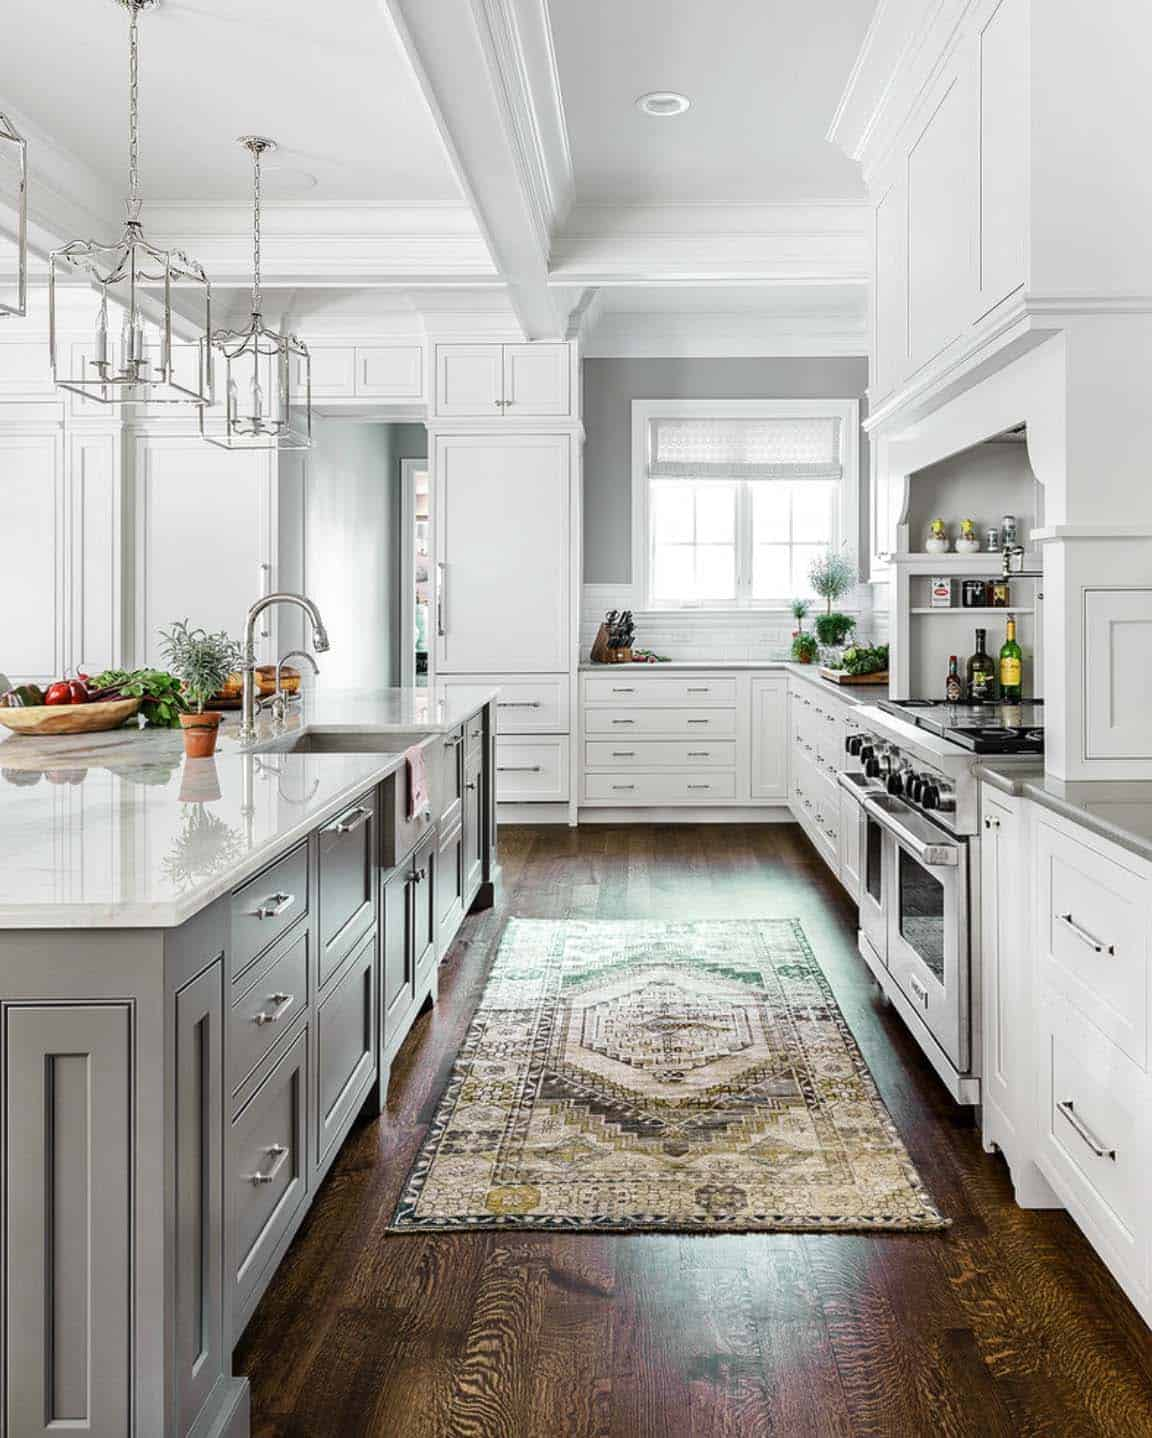 30+ Beautiful And Inspiring Light-filled Kitchens With